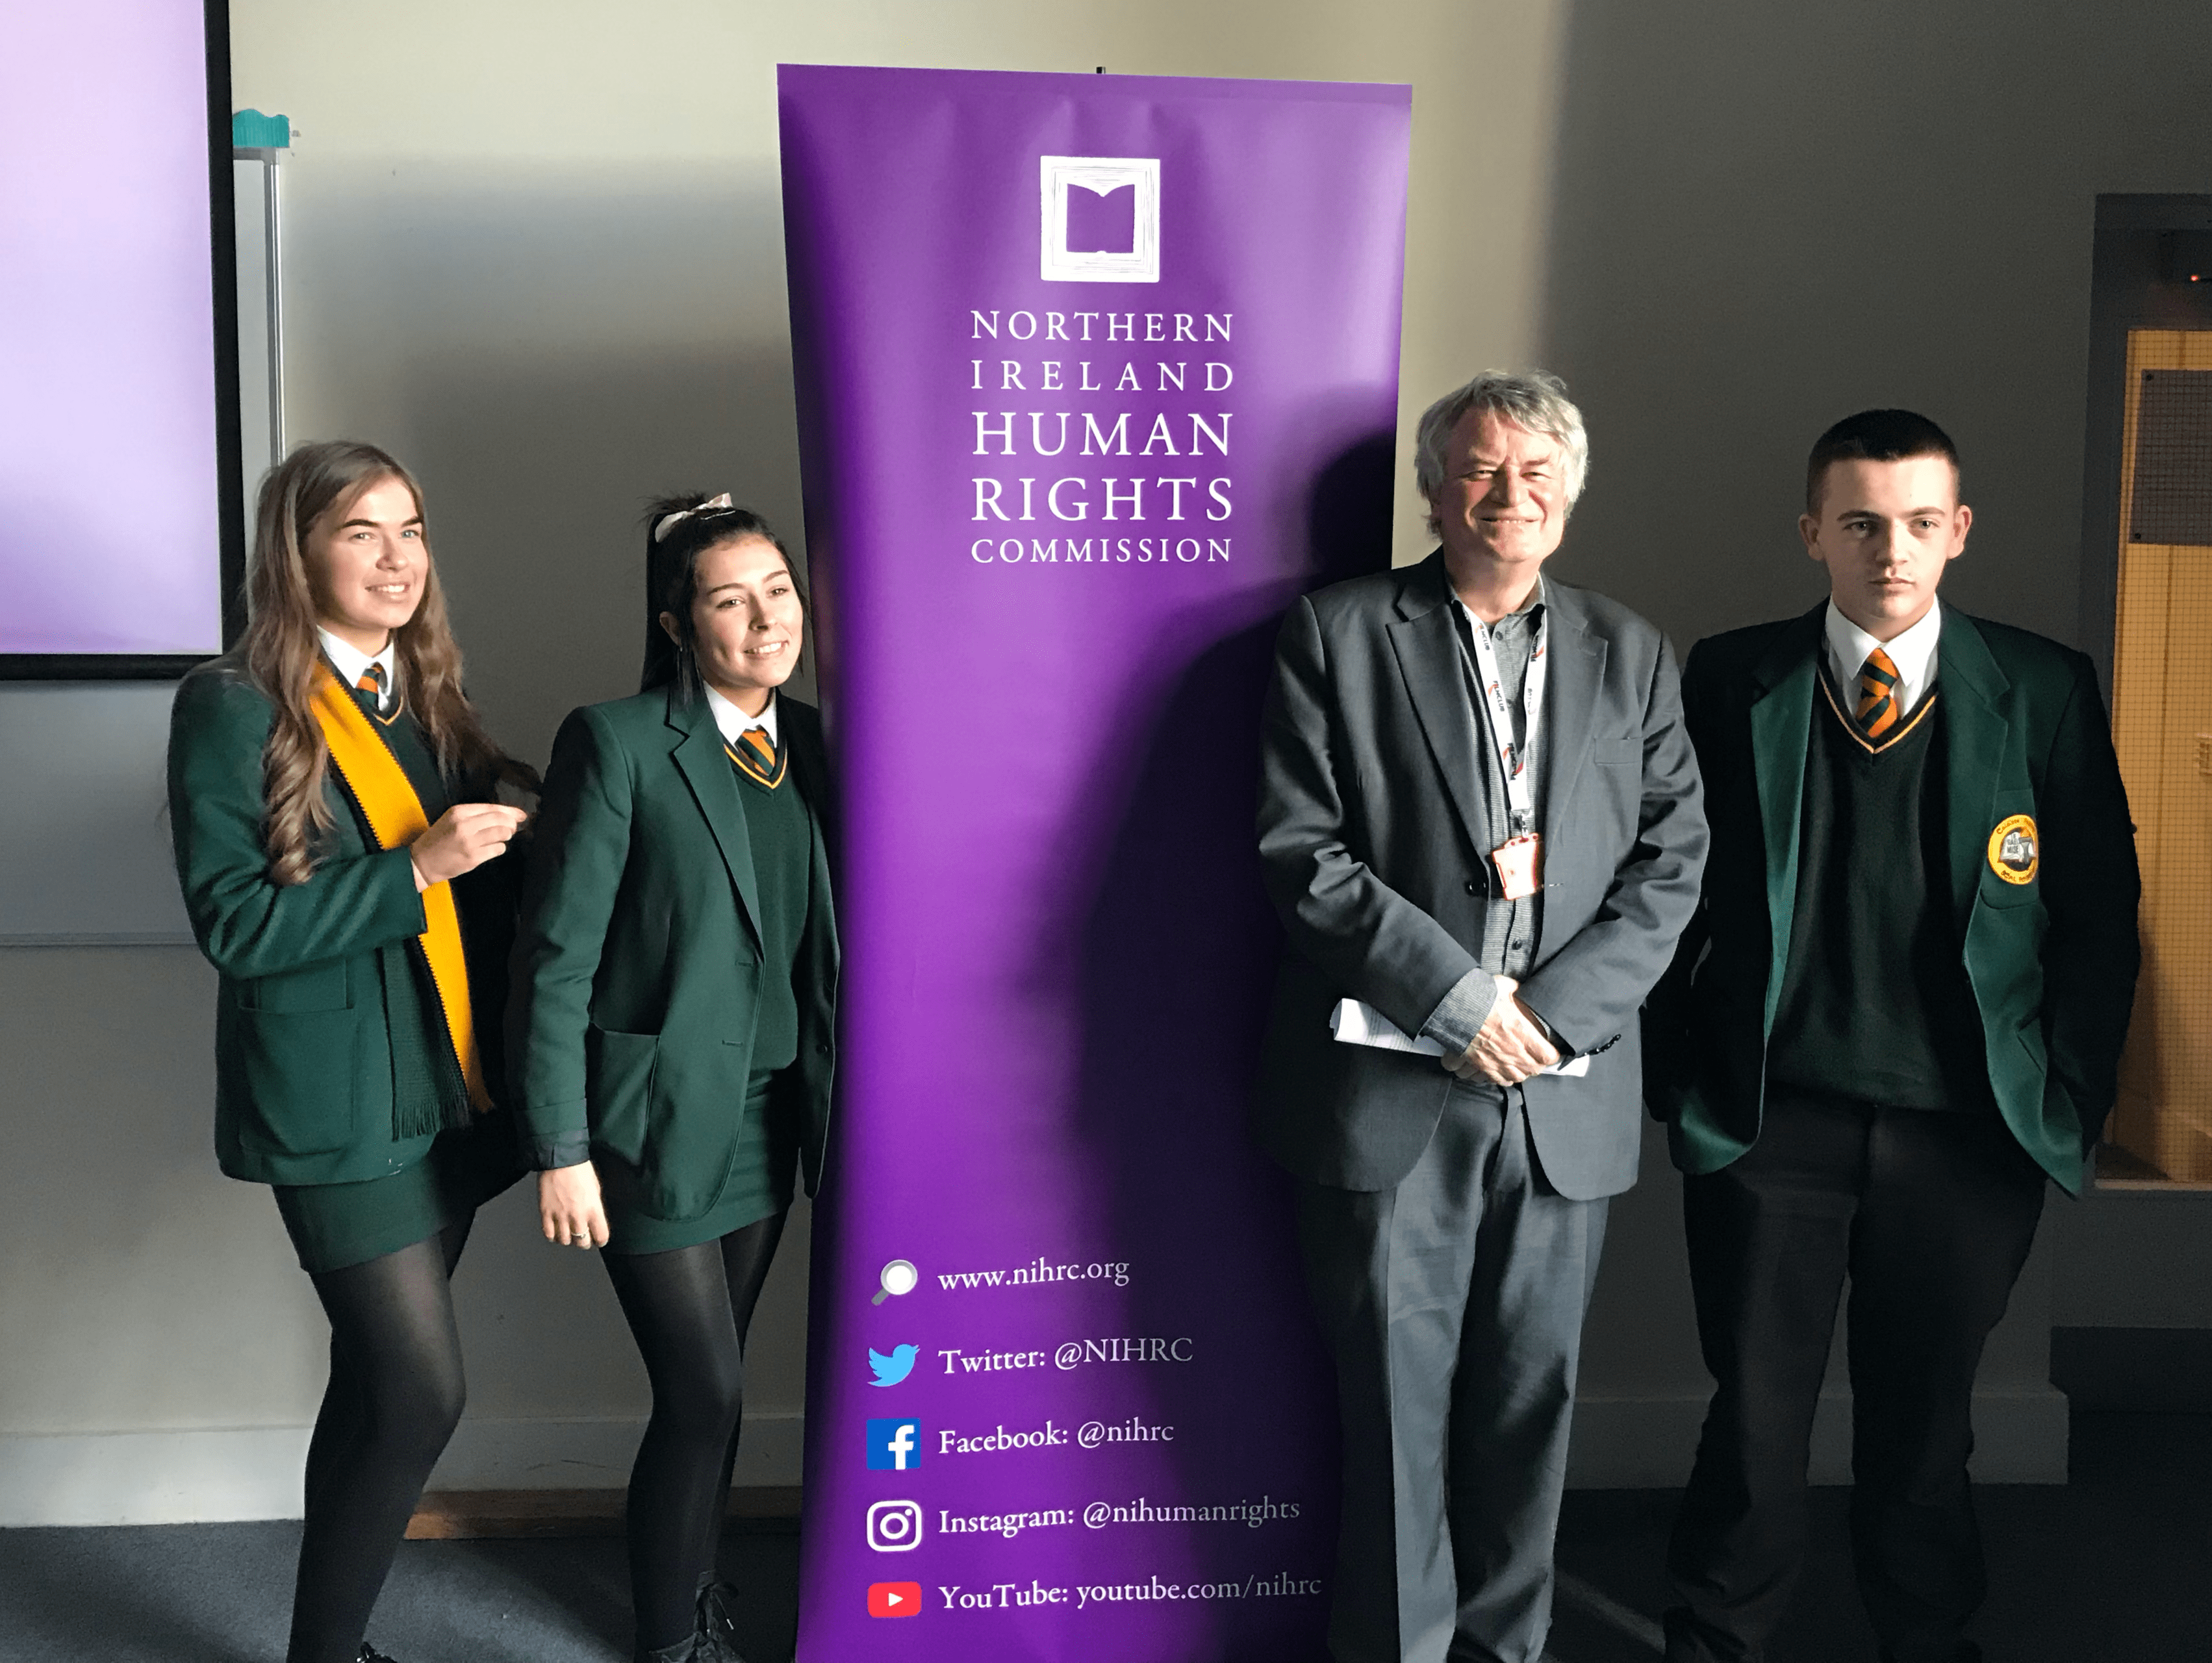 NI Human Rights Commission visit Coláiste Feirste